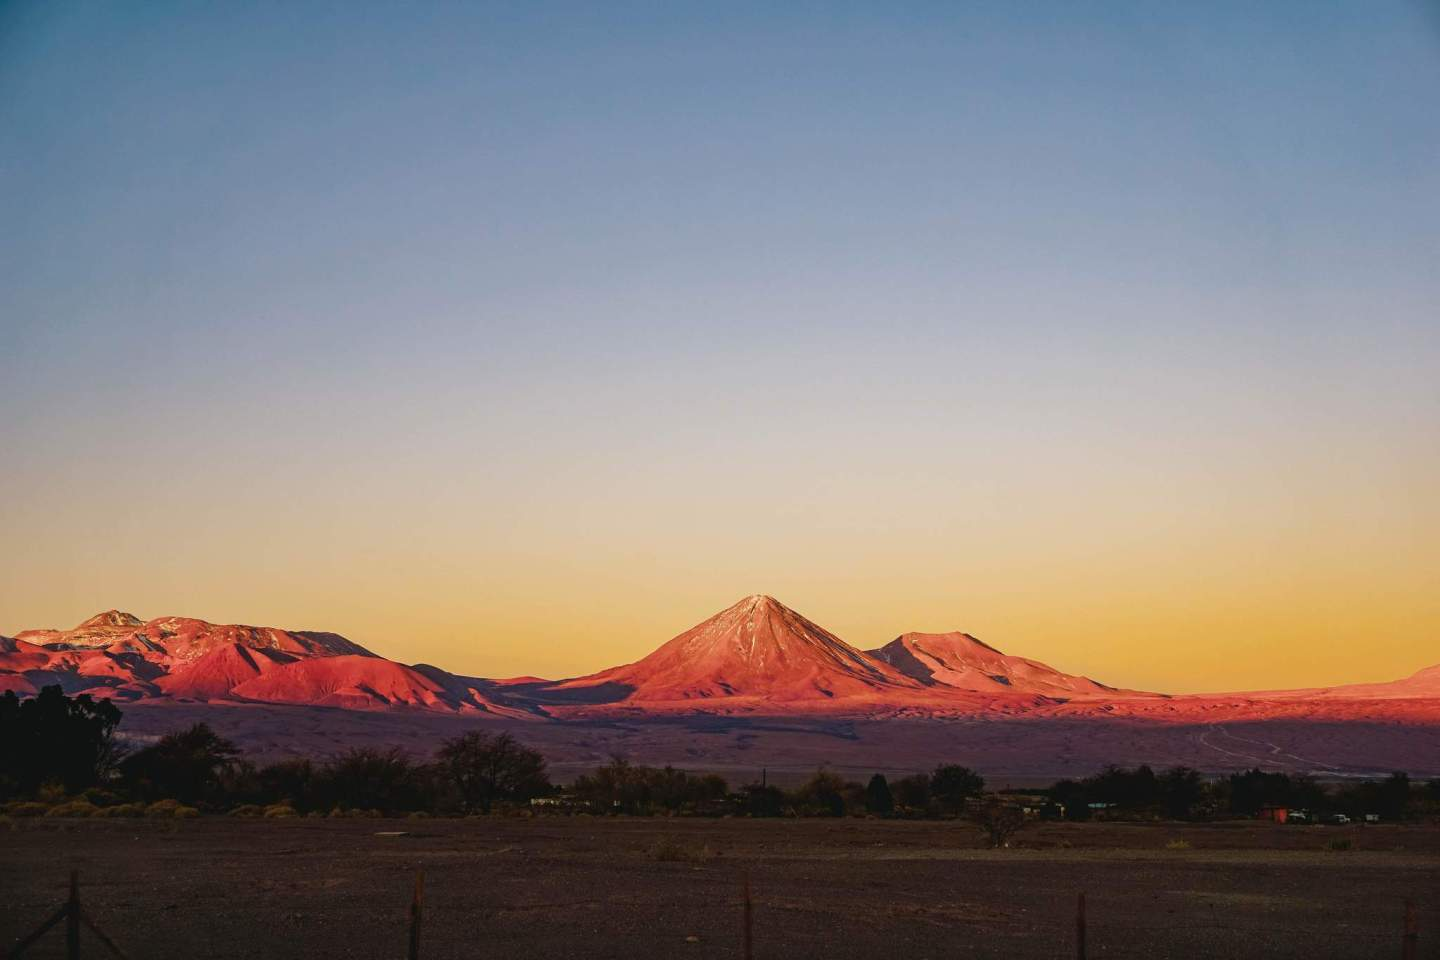 Self-driving guide-to-Atacama-Desert-itinerary-must-see-spots-15